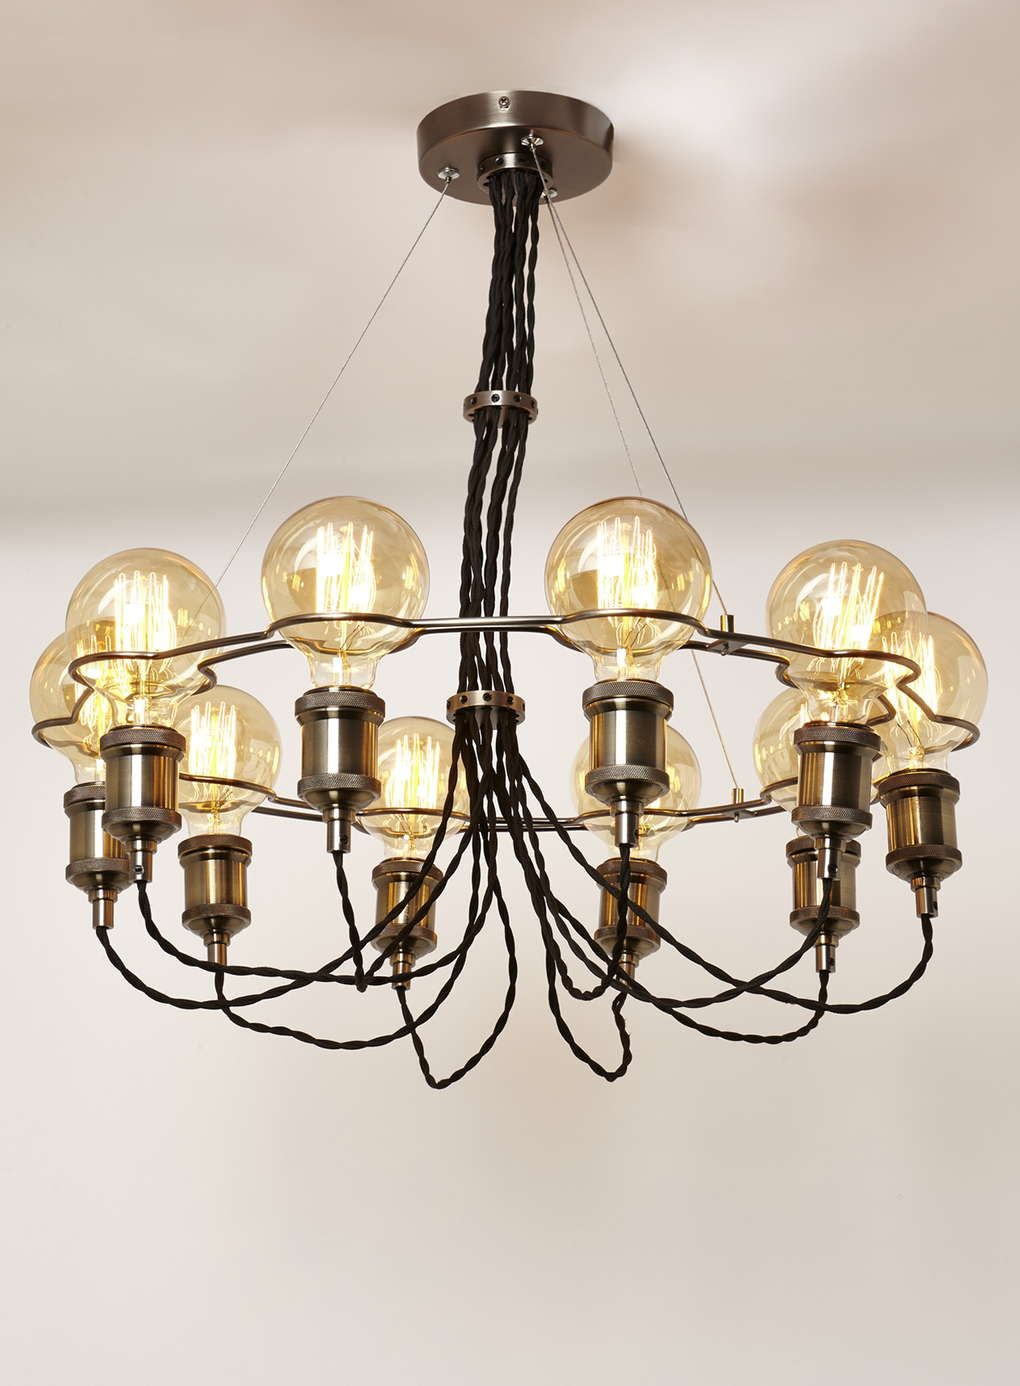 Copper soho chandelier bhs kids room france pinterest bhs copper soho chandelier bhs arubaitofo Image collections